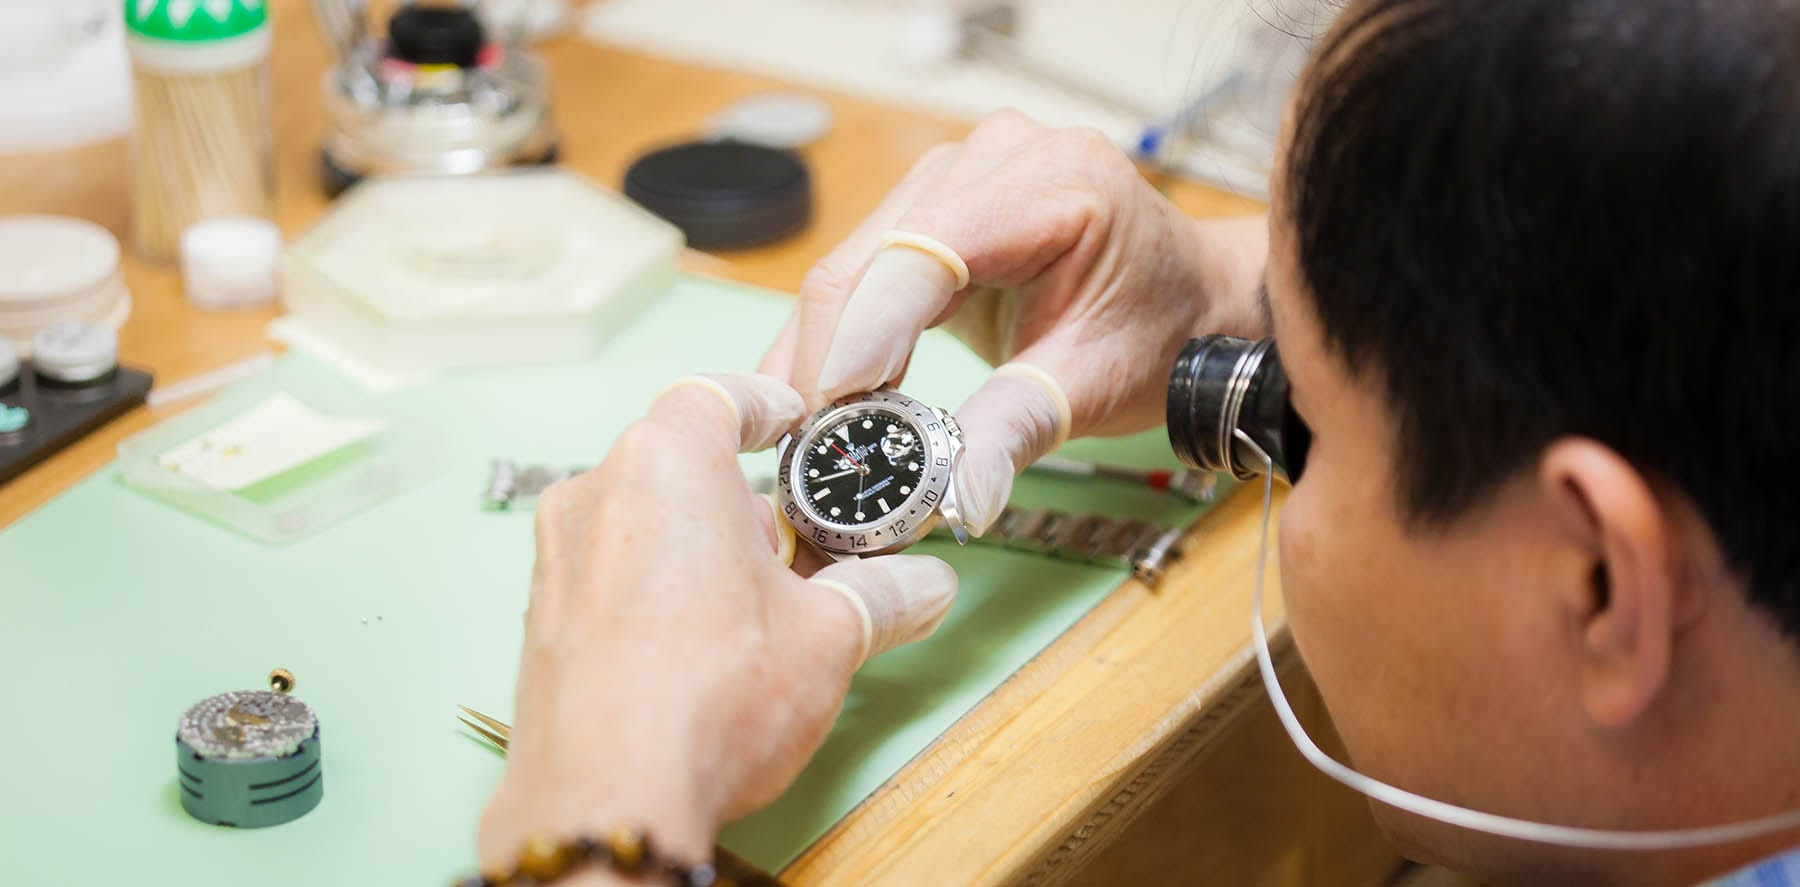 How Often Should You Clean Your Rolex